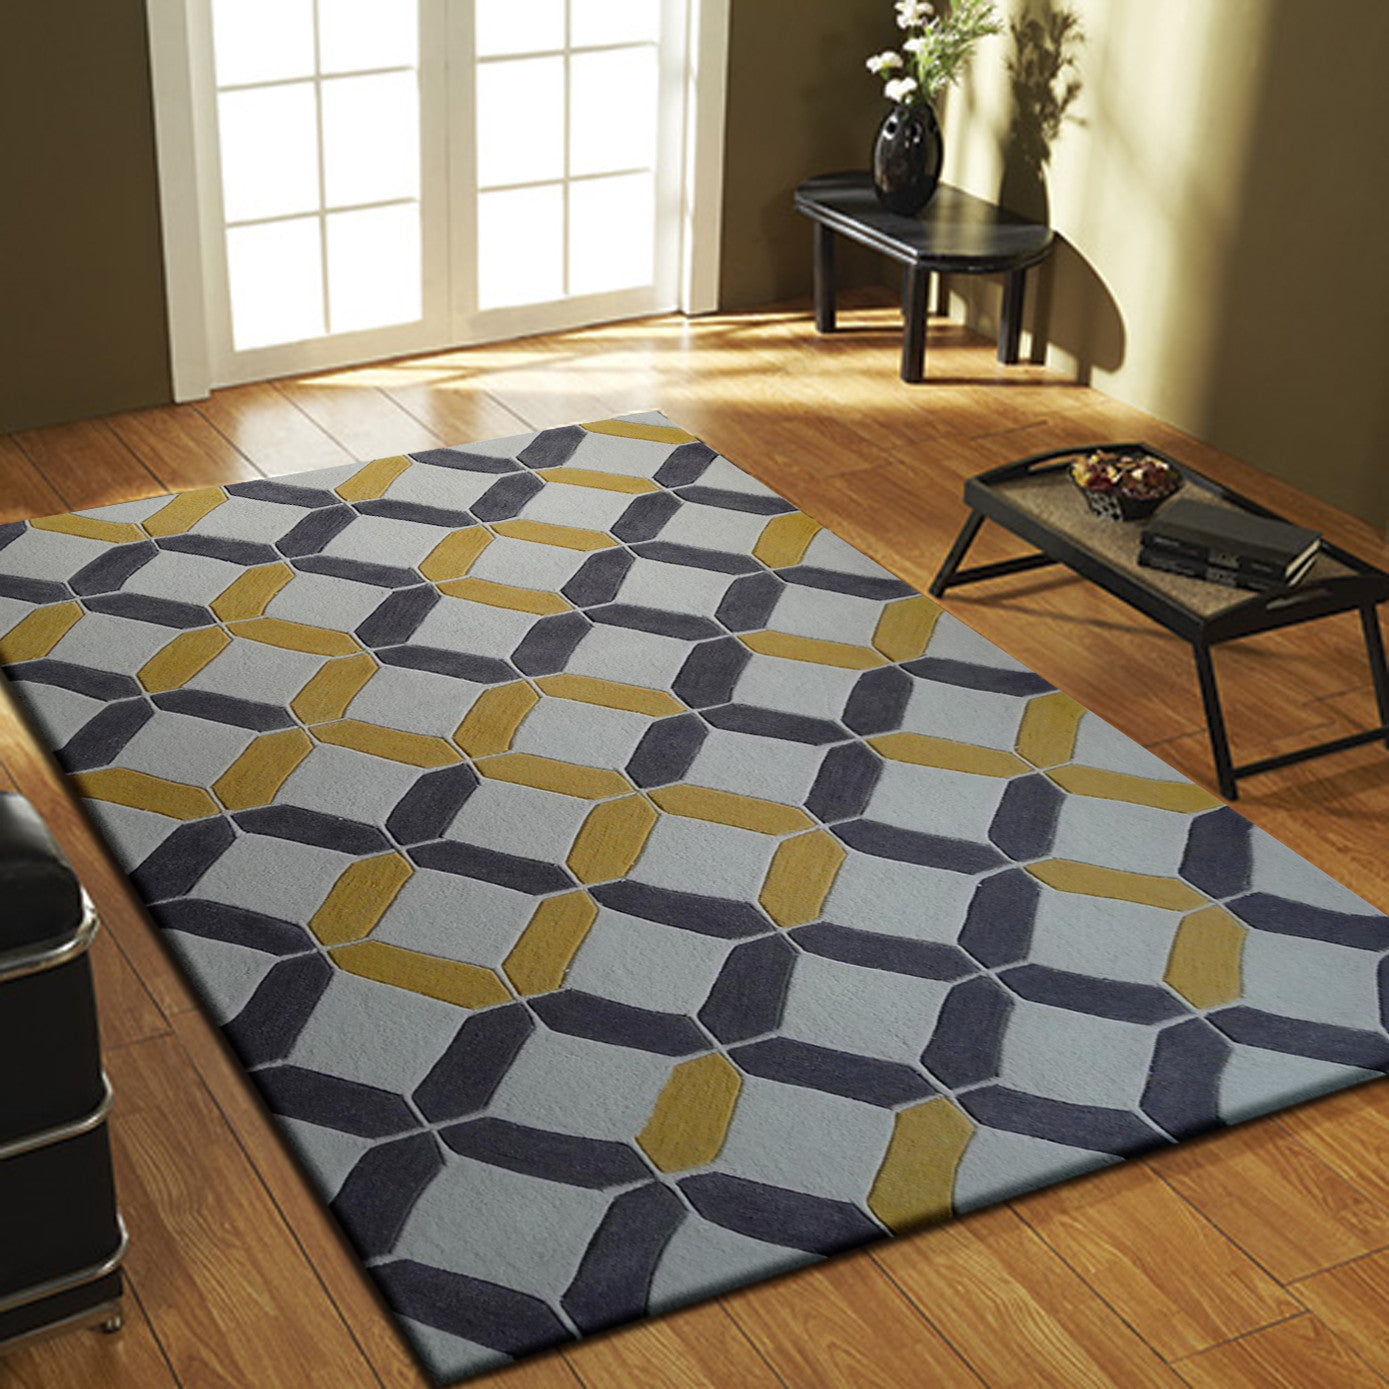 Charcoal With Yellow Contemporary Indoor Area Rug 5u0027 X 7u0027 Ft.